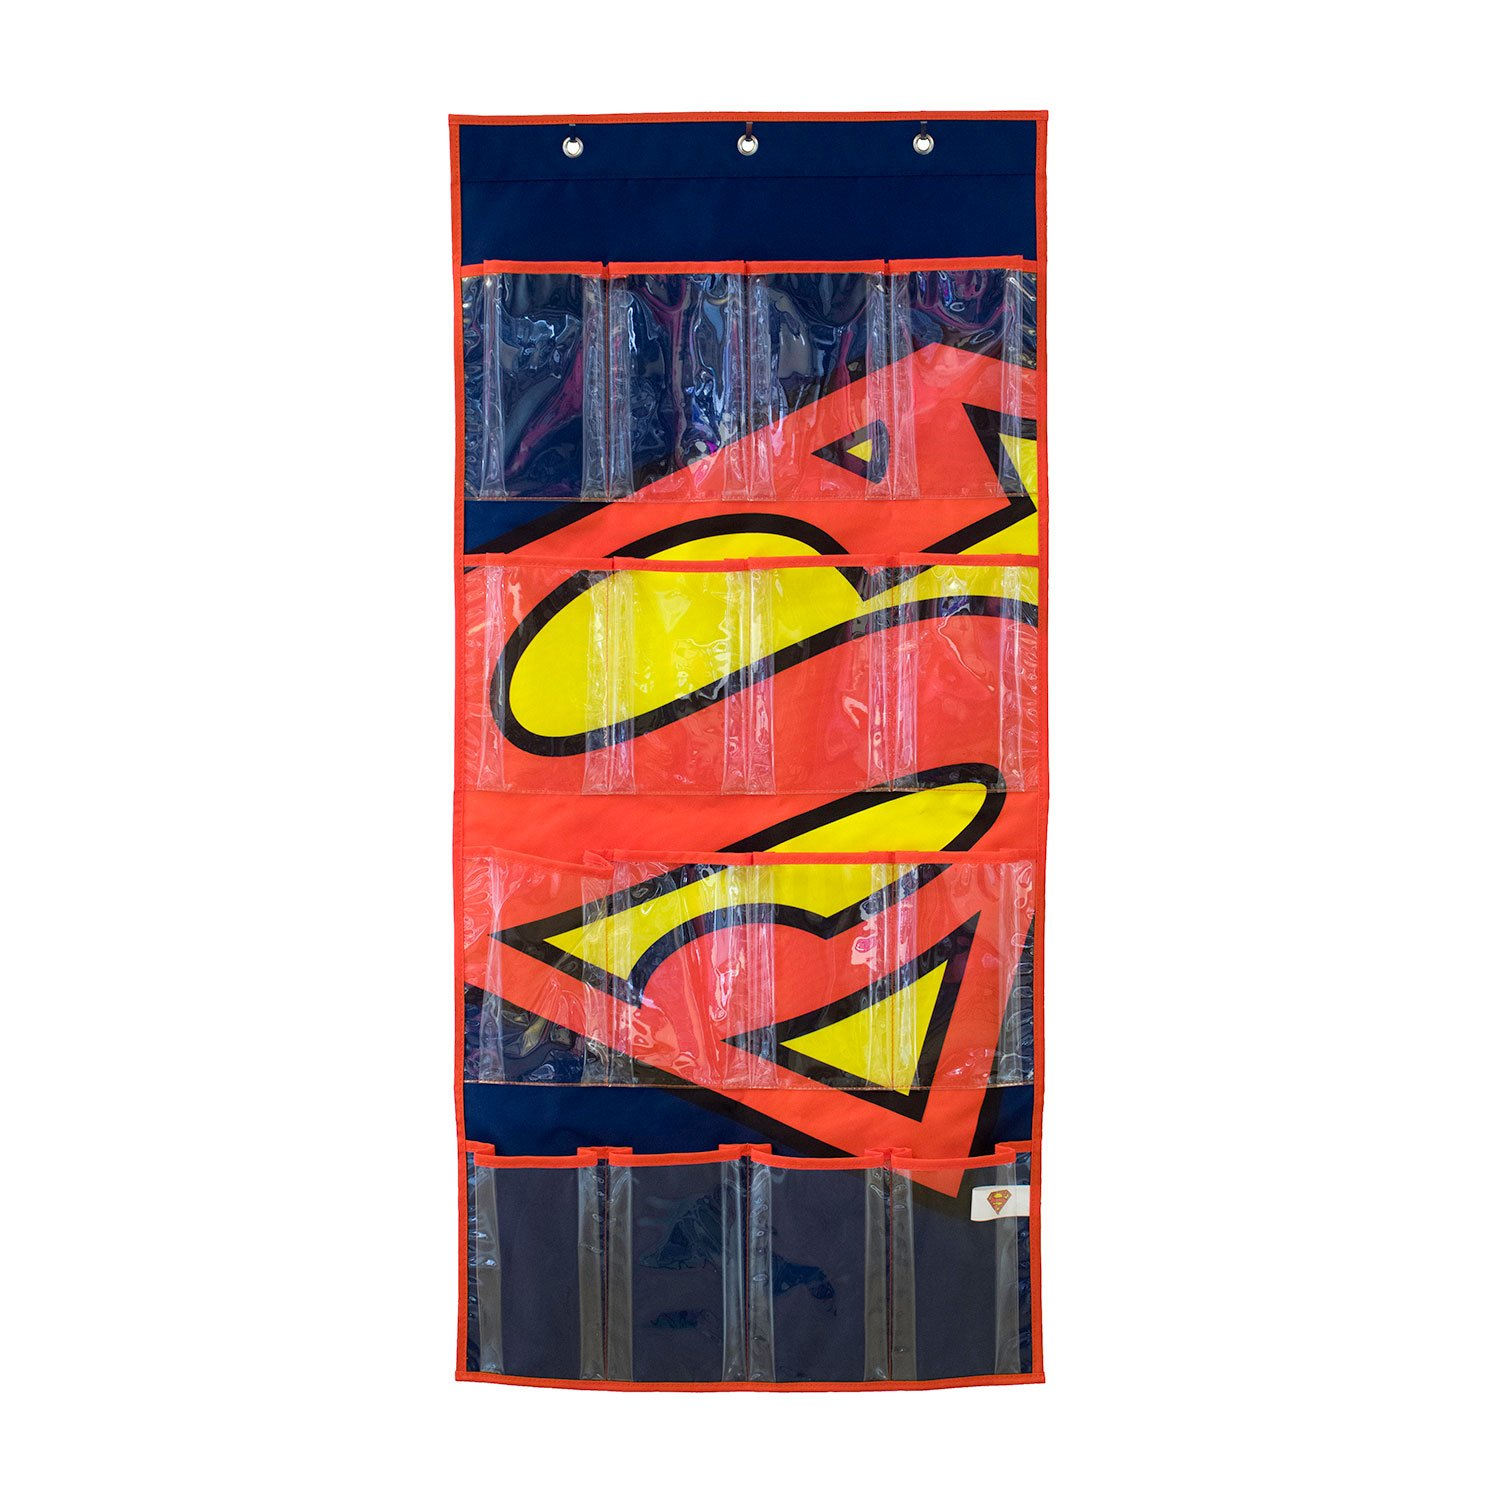 Everything Mary DC Comics Superman Shoe Organizer | 16-Pocket Hanging Shoe Organizer for Closet and Bedroom Storage | DC Comics Over The Door Shoe Organizer for Children, Kids Toys